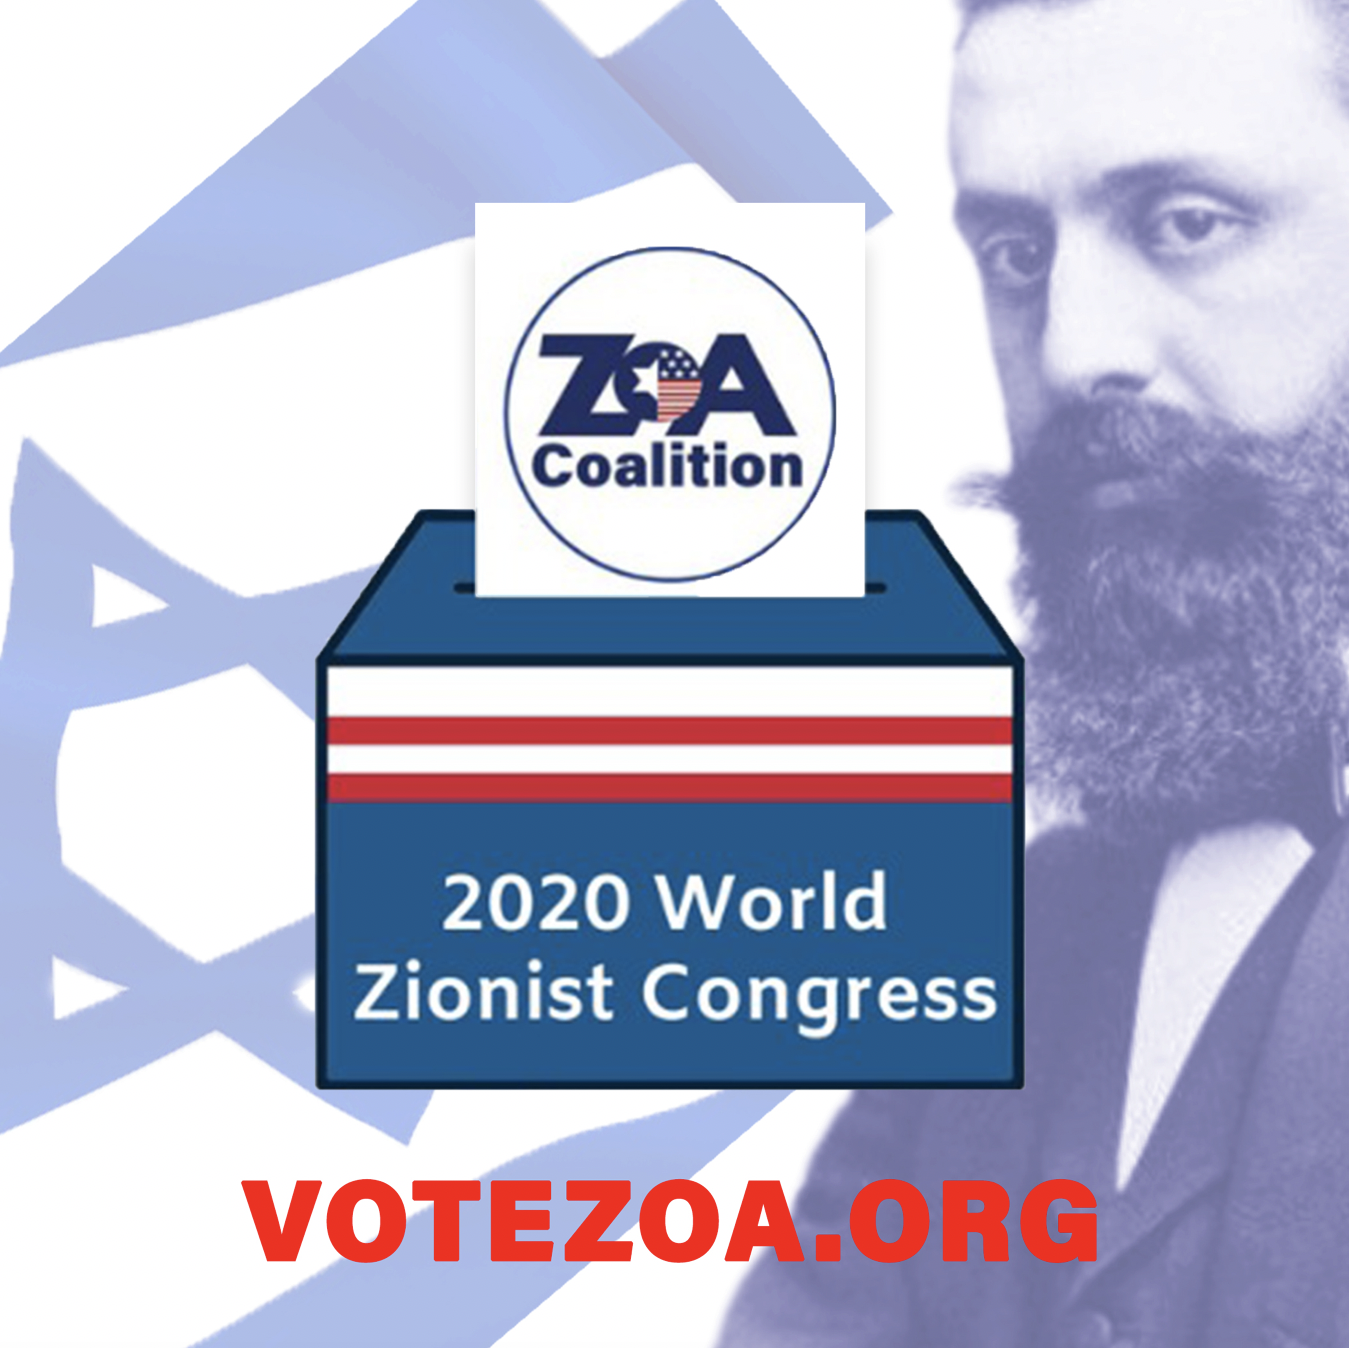 World Zionist Congress Election: More at Stake Than Most Jews Know